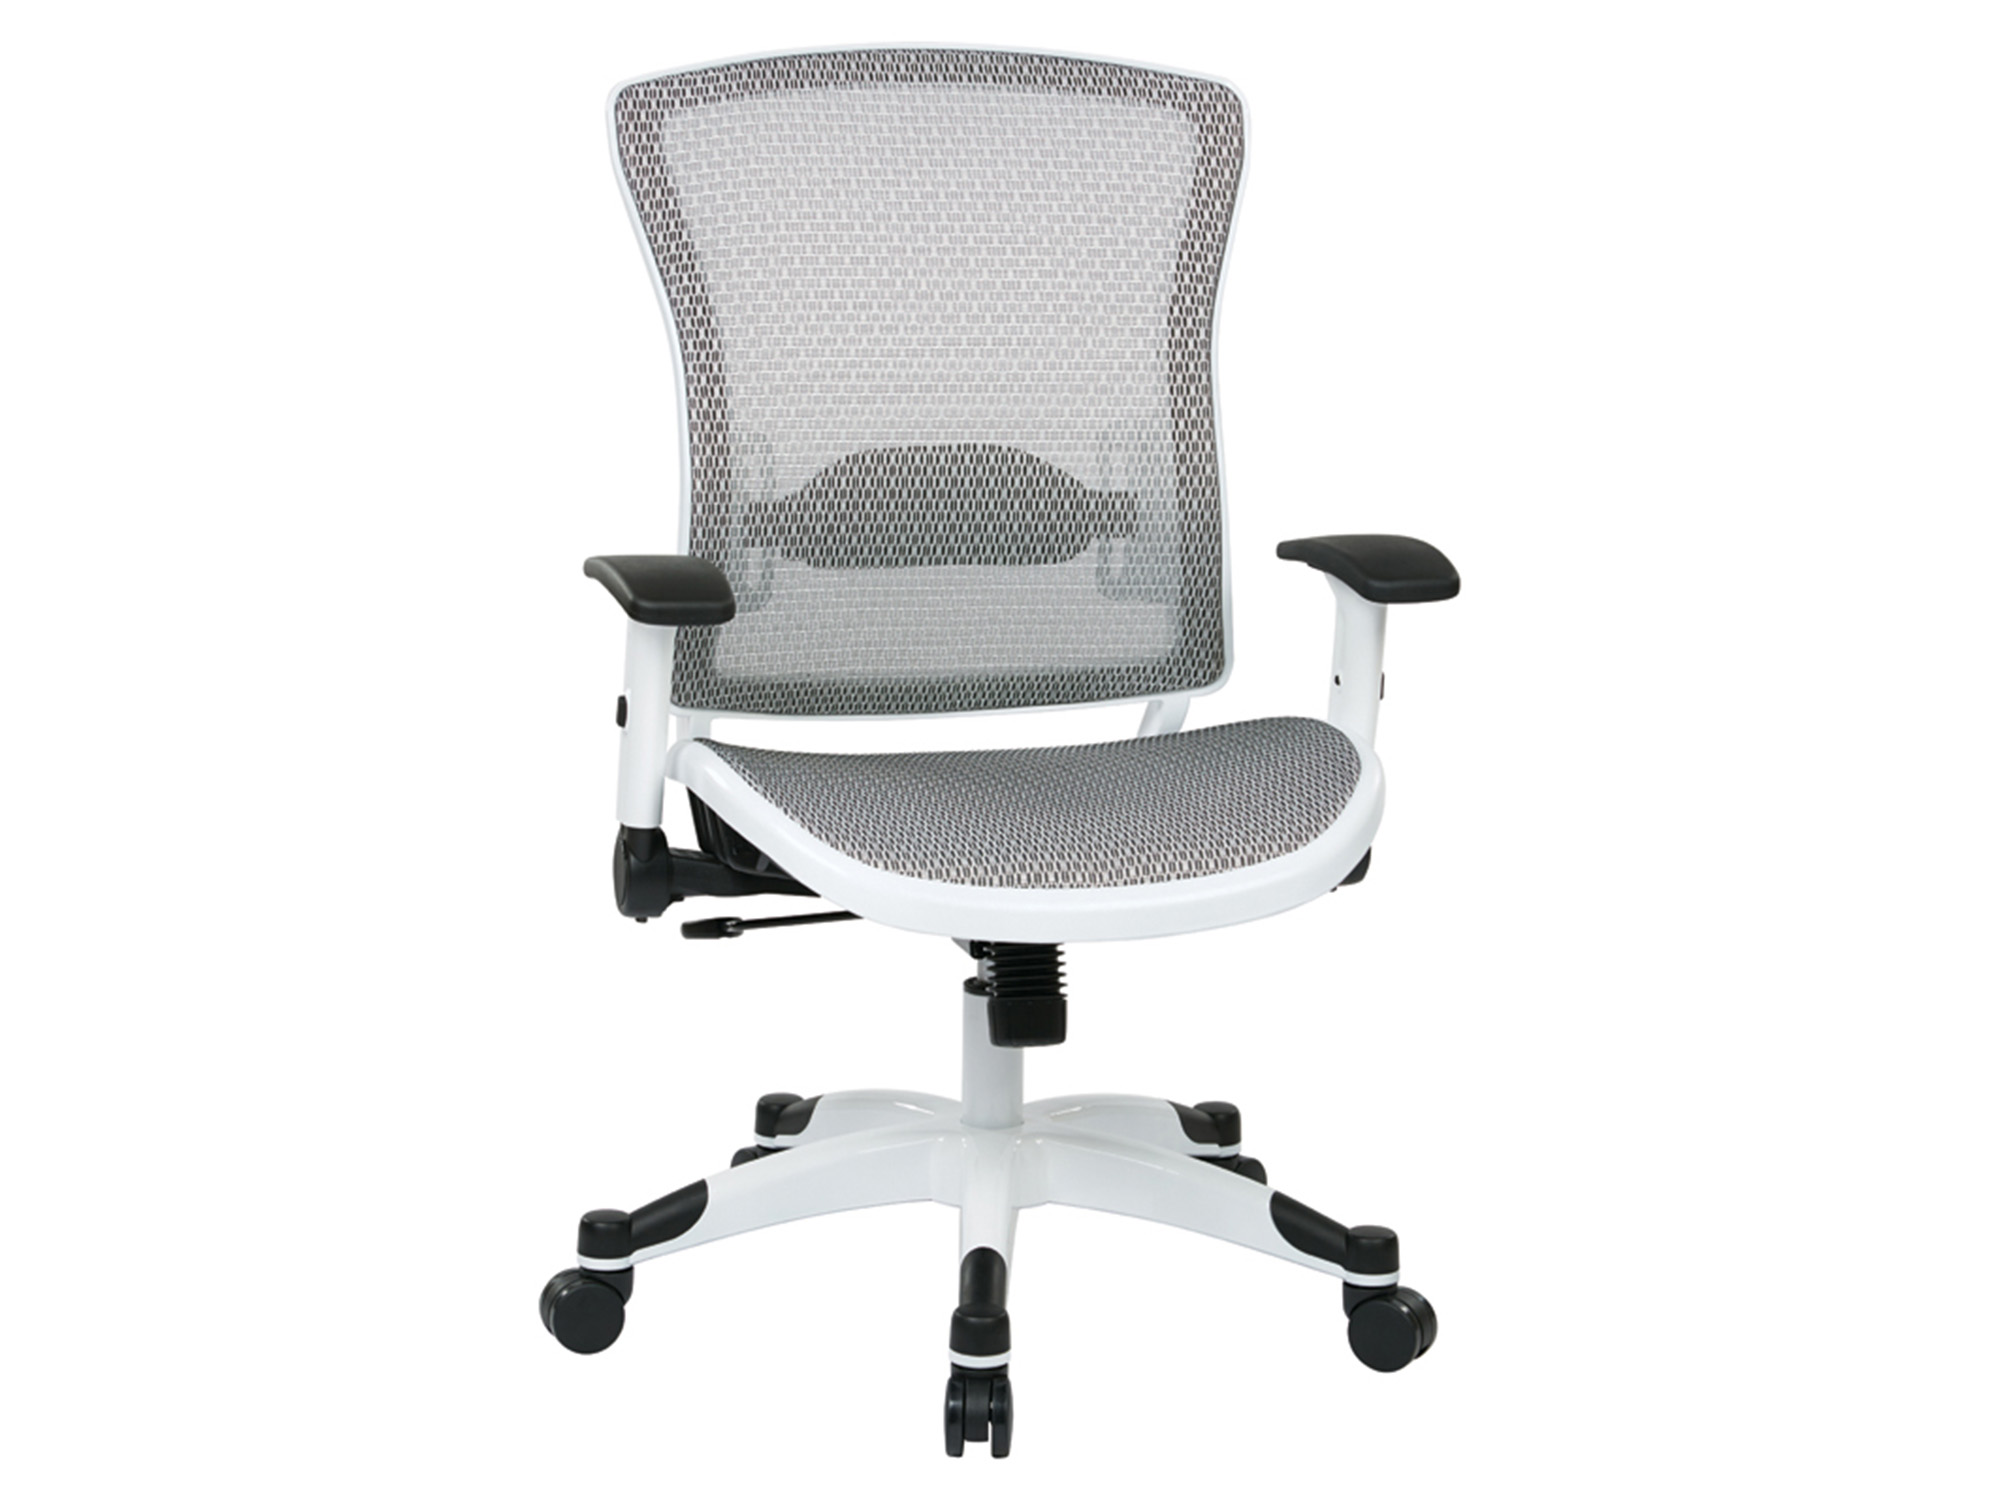 Top Selling Chairs For fice by cubicles